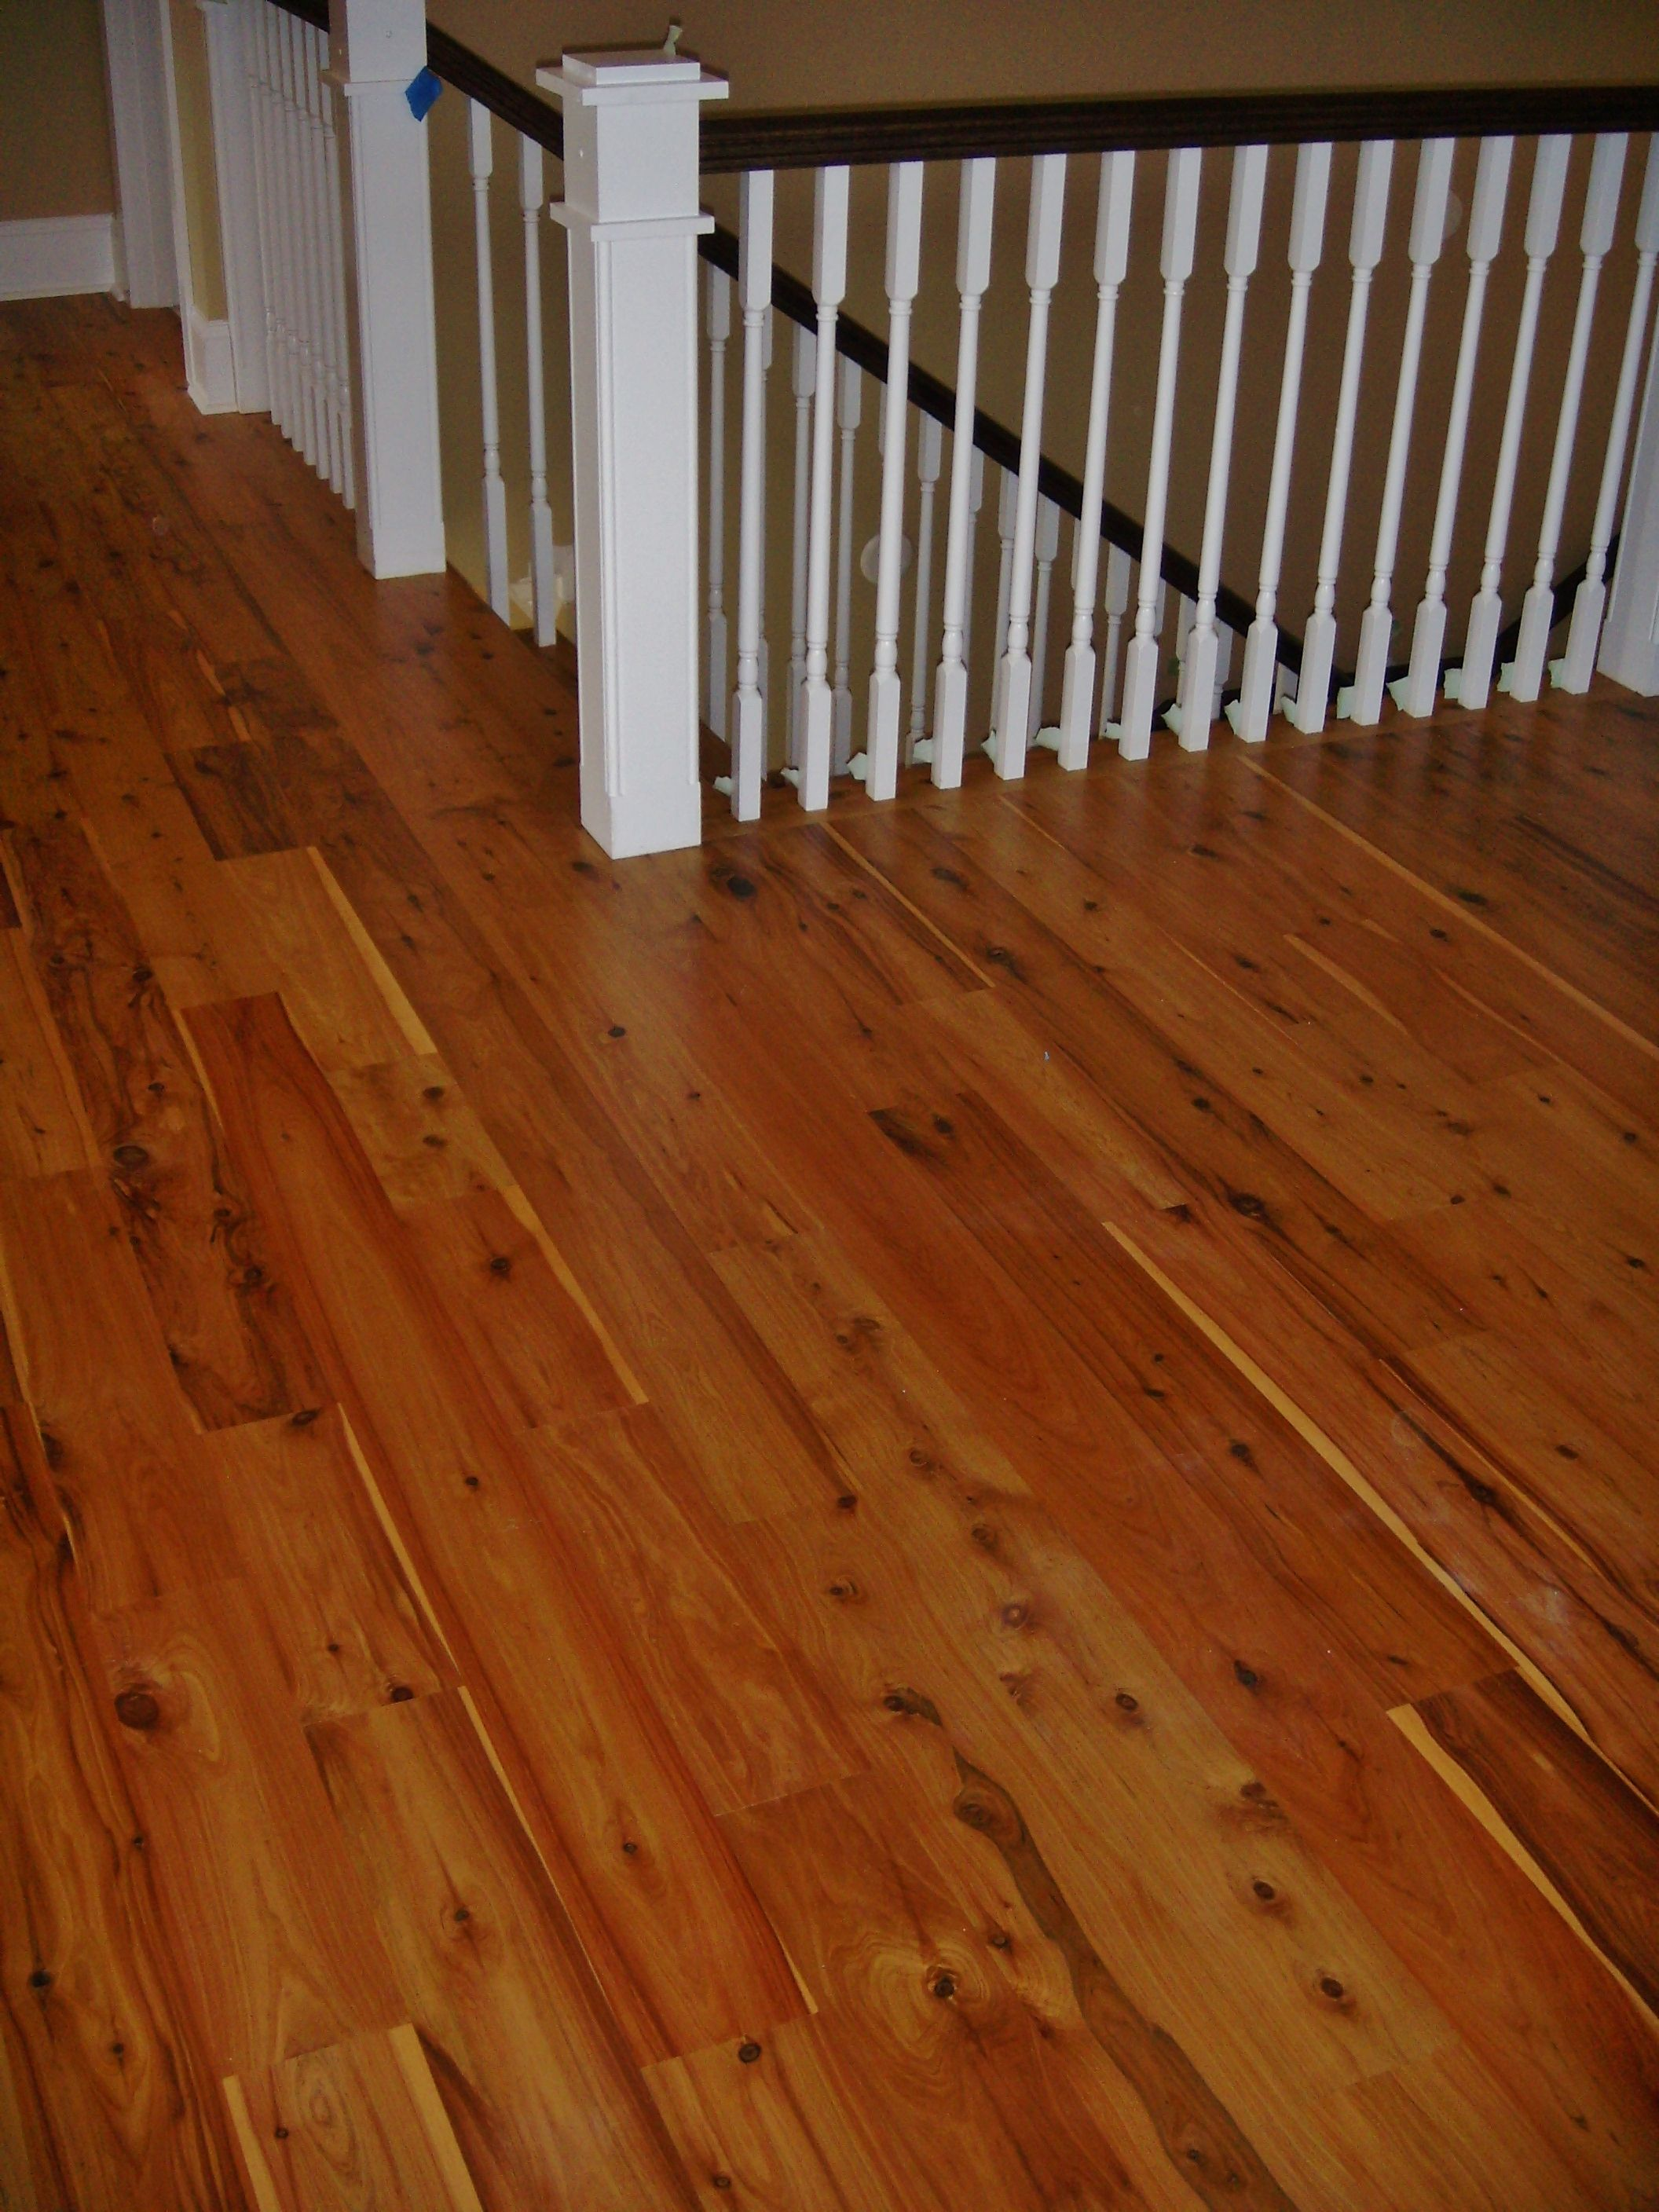 Exceptional Australian Cypress Hardwood Floors Finished With 3 Coats Of Polyurethane